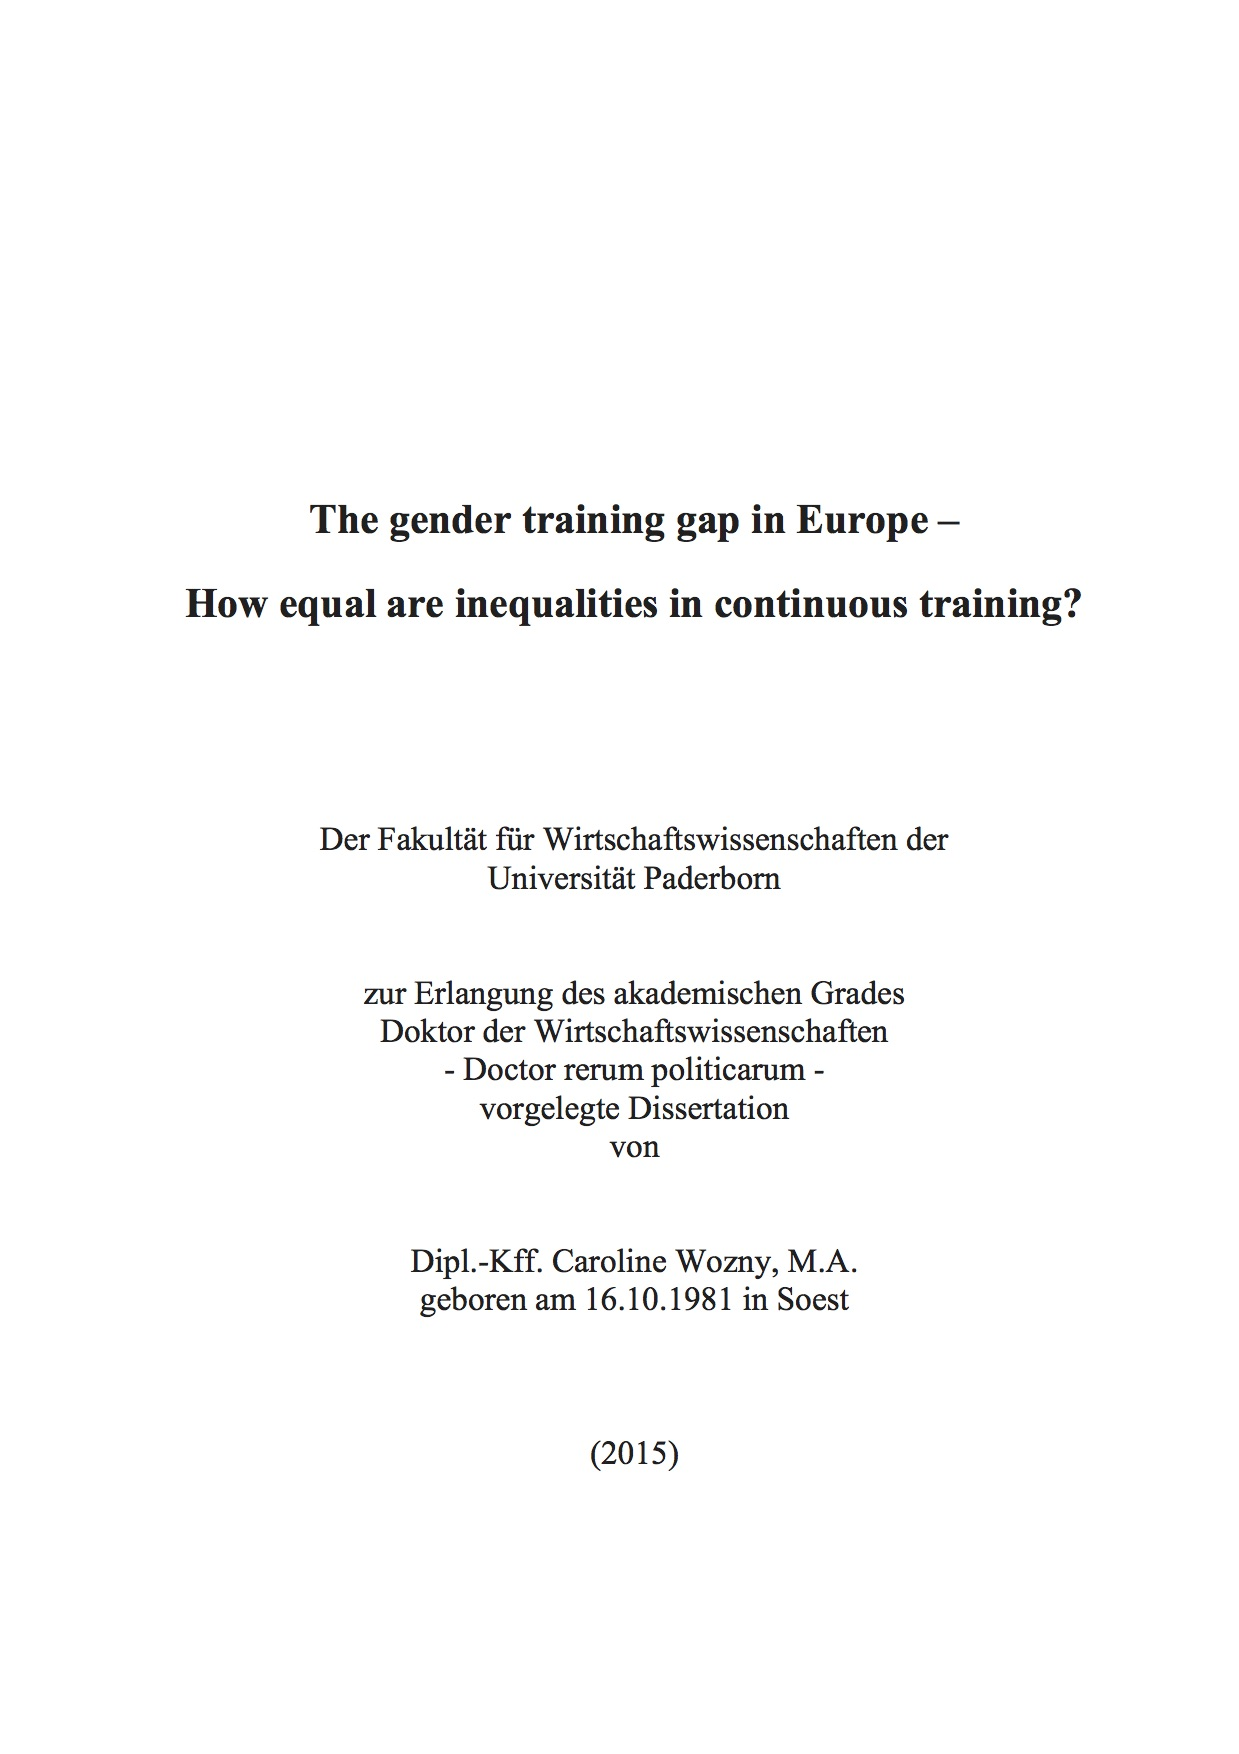 Wozny_2015_The Gender Training Gap in Europe